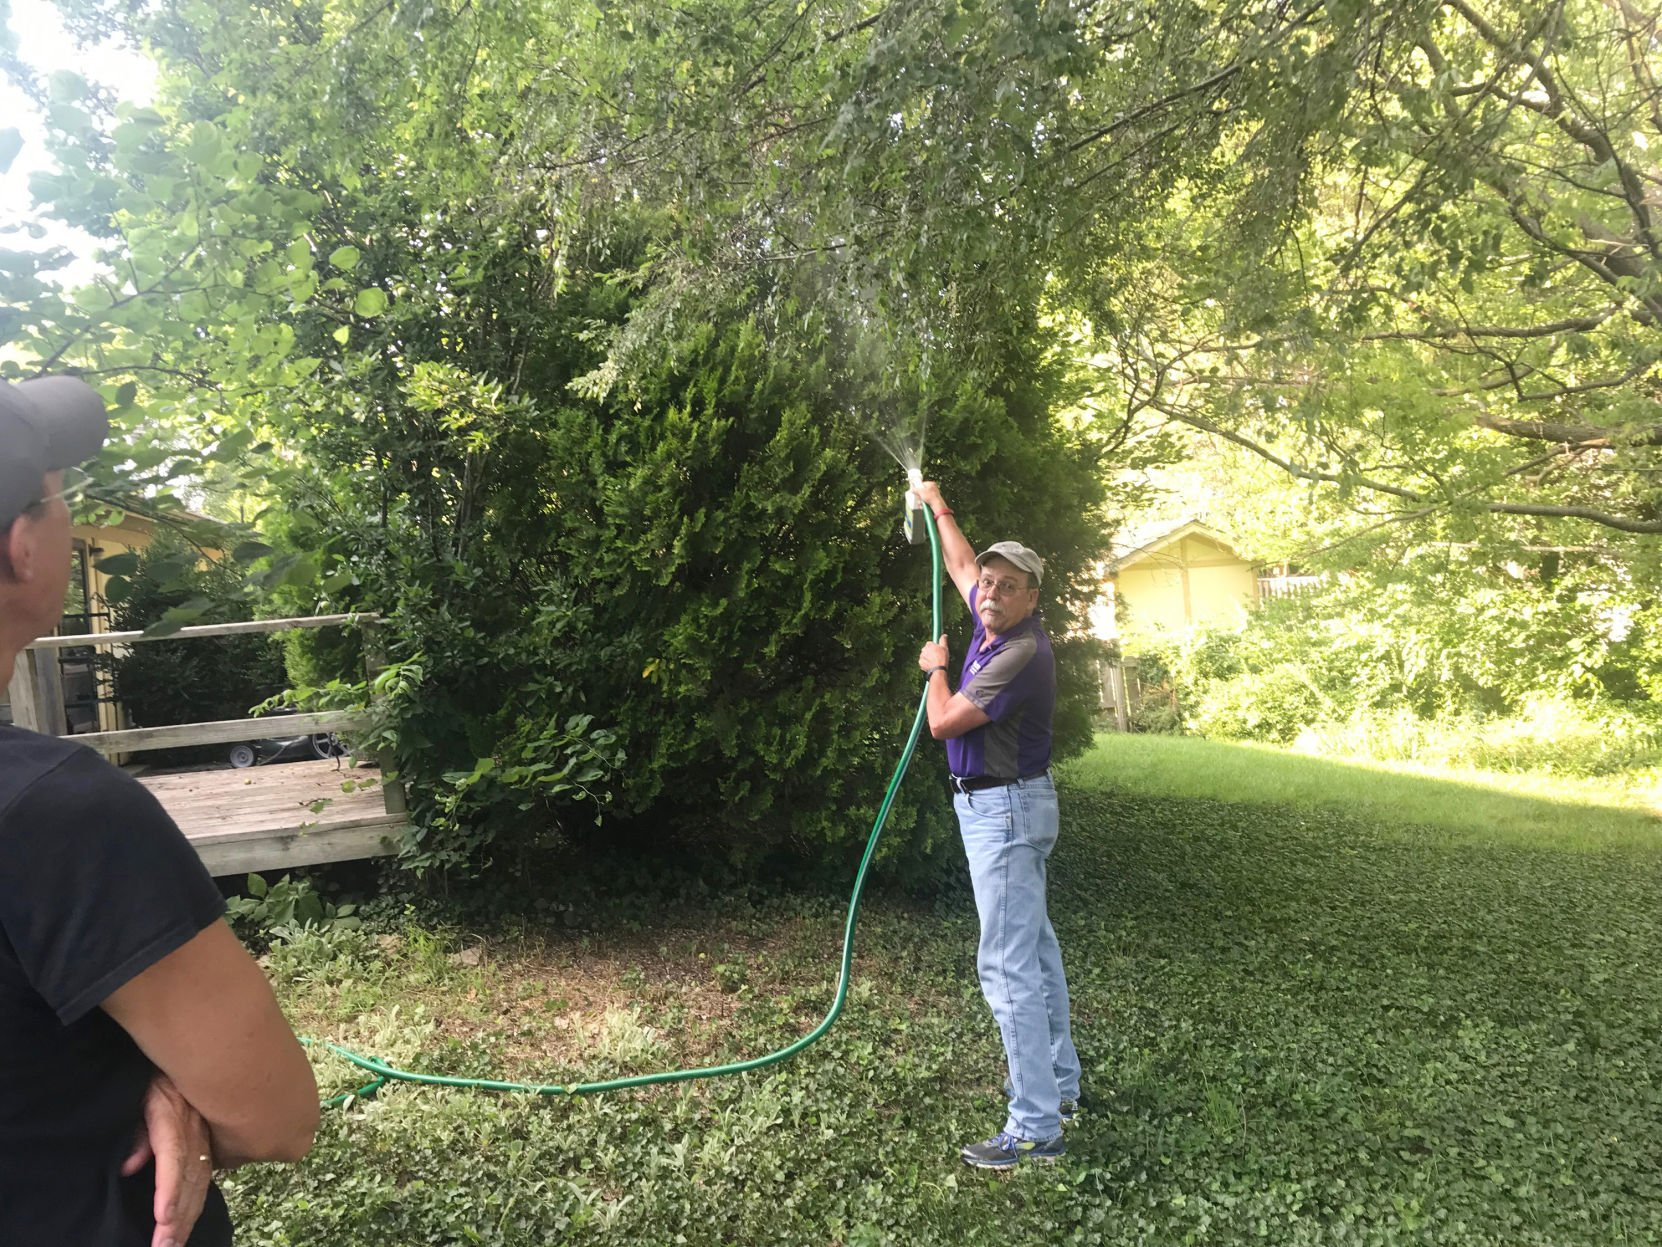 Demonstration helps residents in identifying bagworms, preventing plant damage